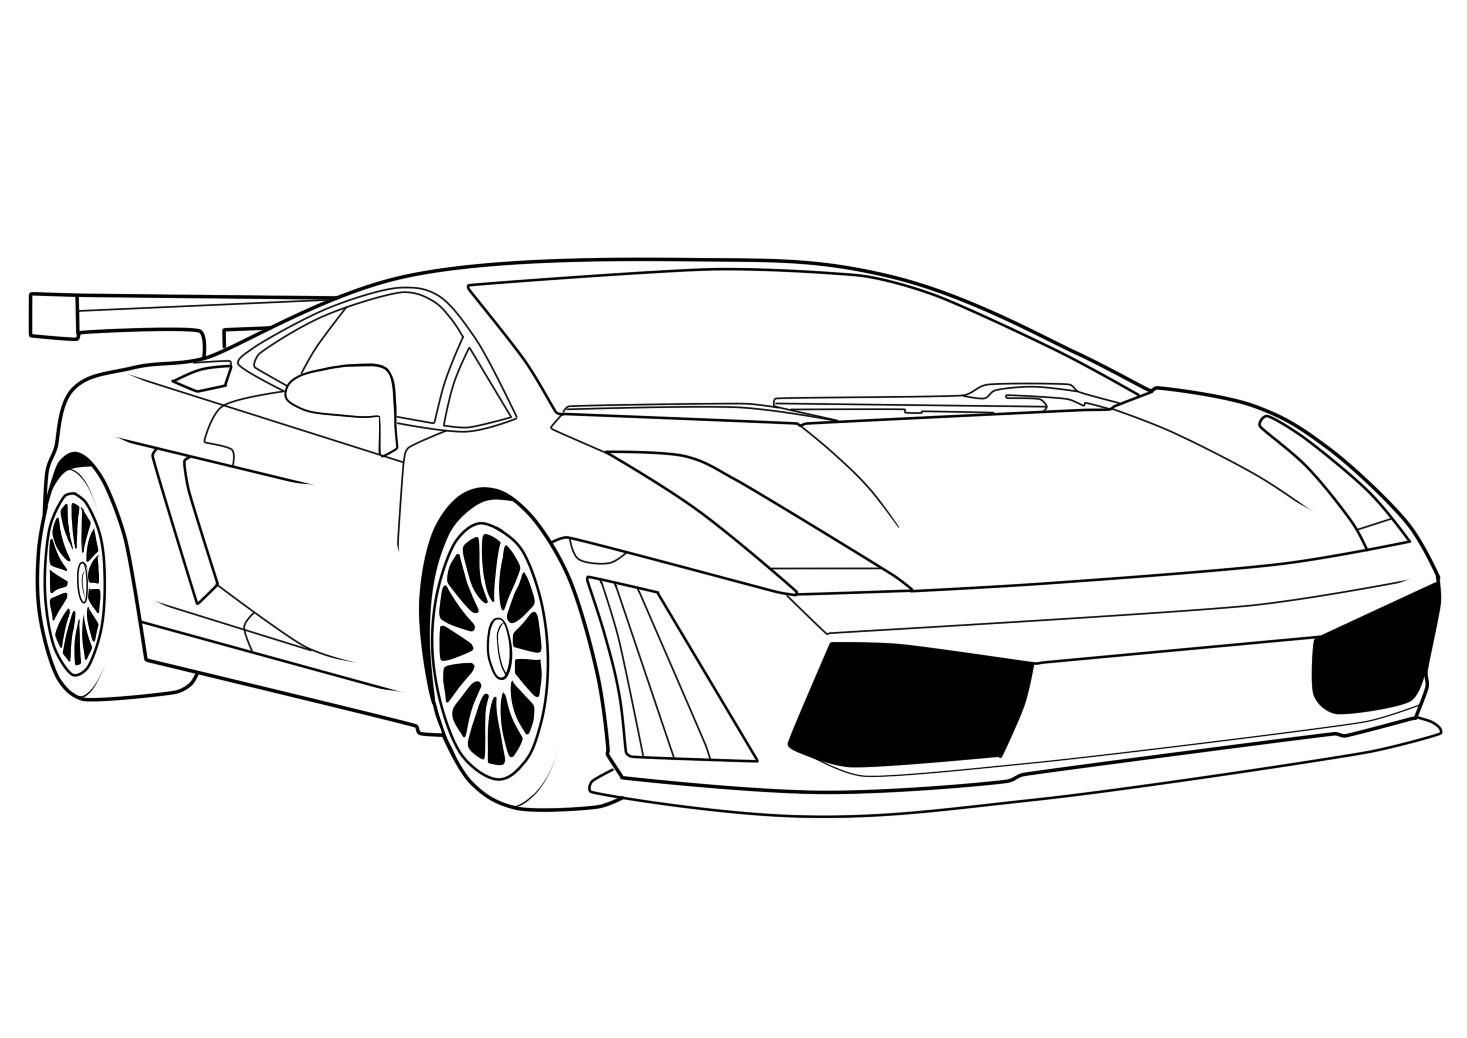 exotic car coloring pages luxury car drawing at getdrawings free download exotic coloring car pages